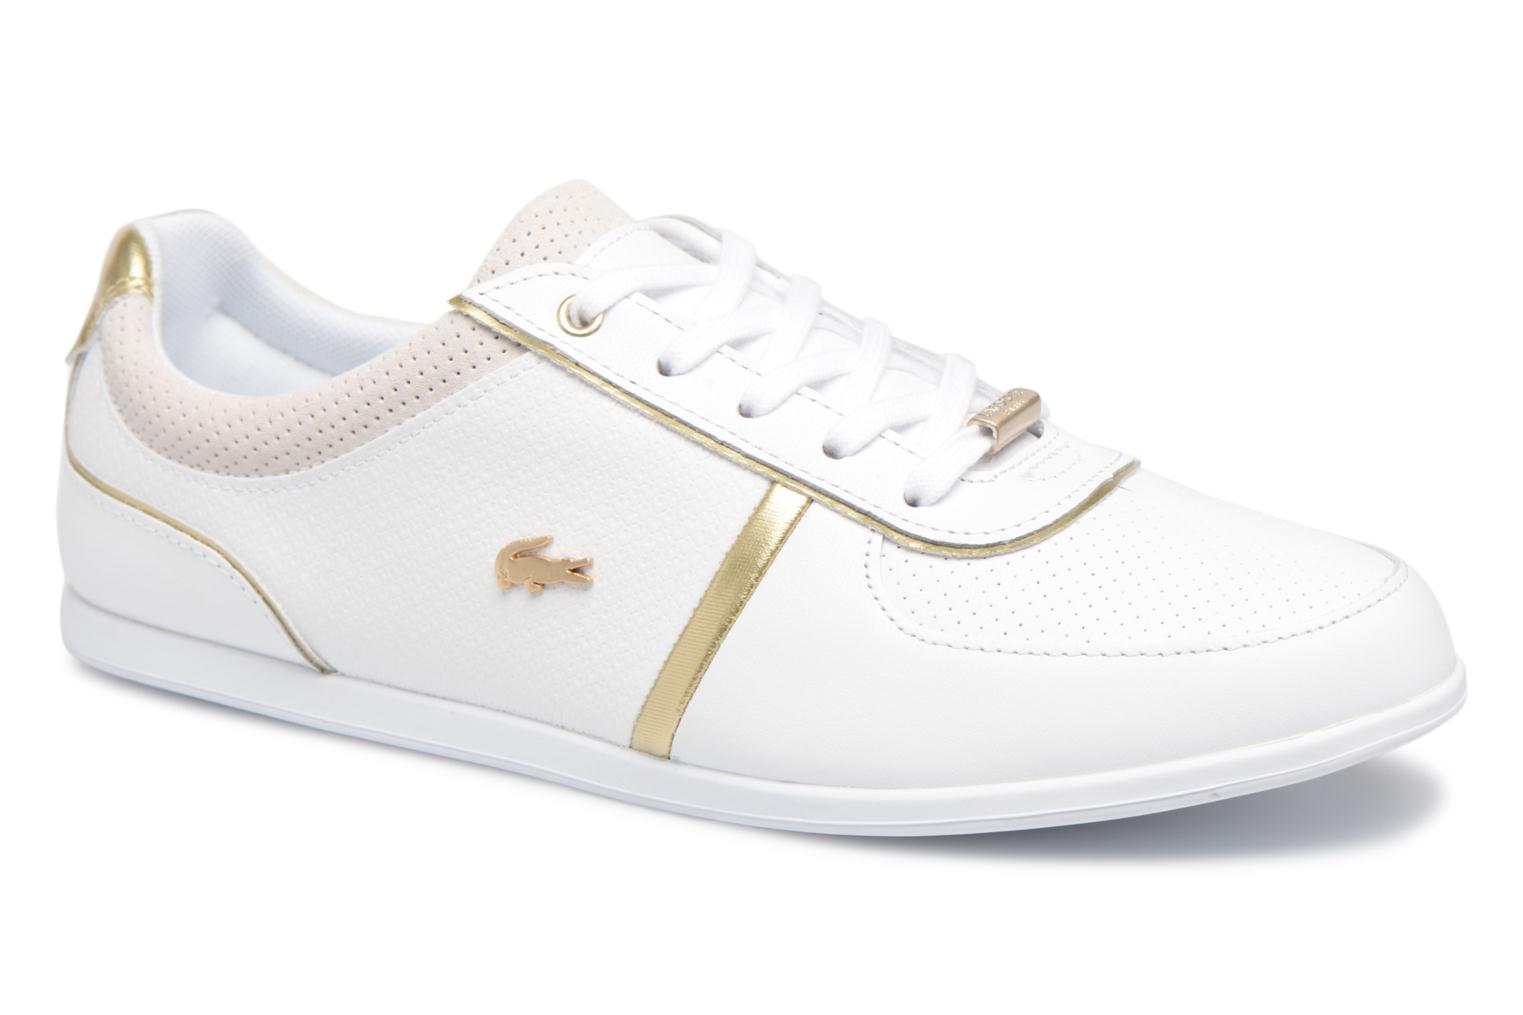 Marques Chaussure femme Lacoste femme REY U THROAT 118 1 wht/wht